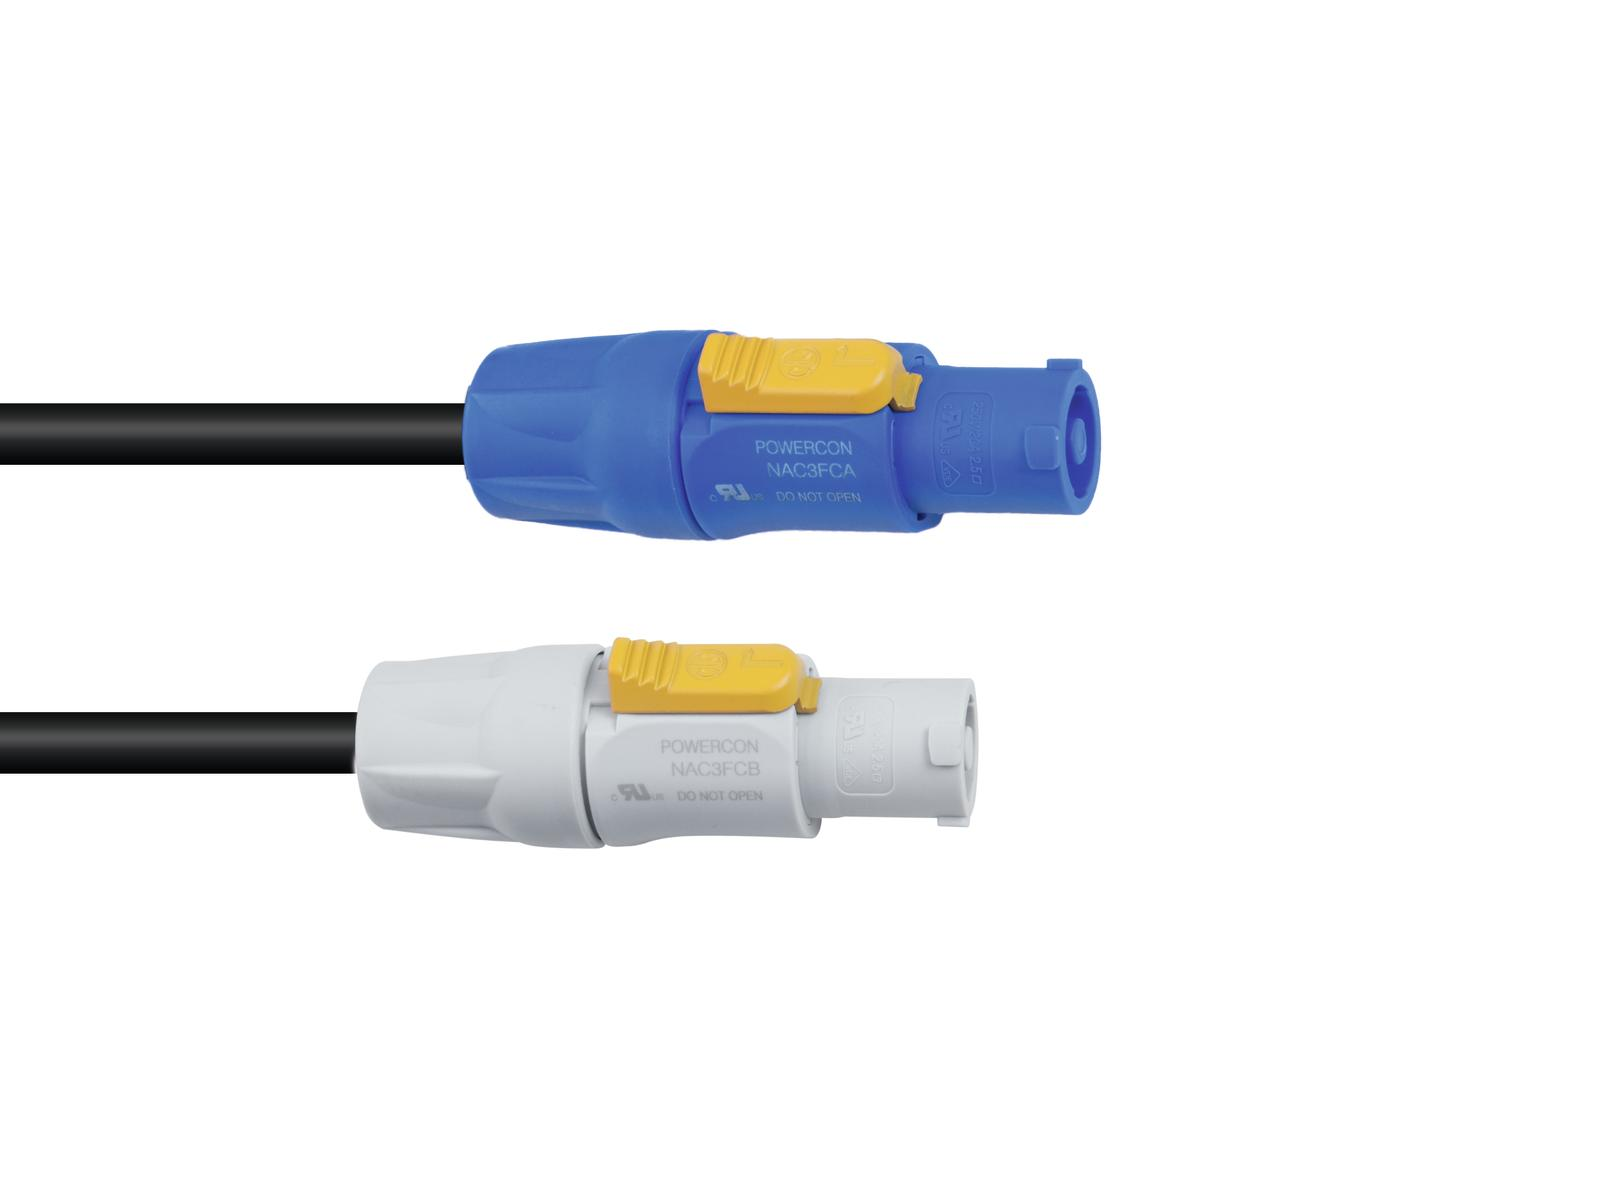 Power cable PSSO PowerCon 3x2.